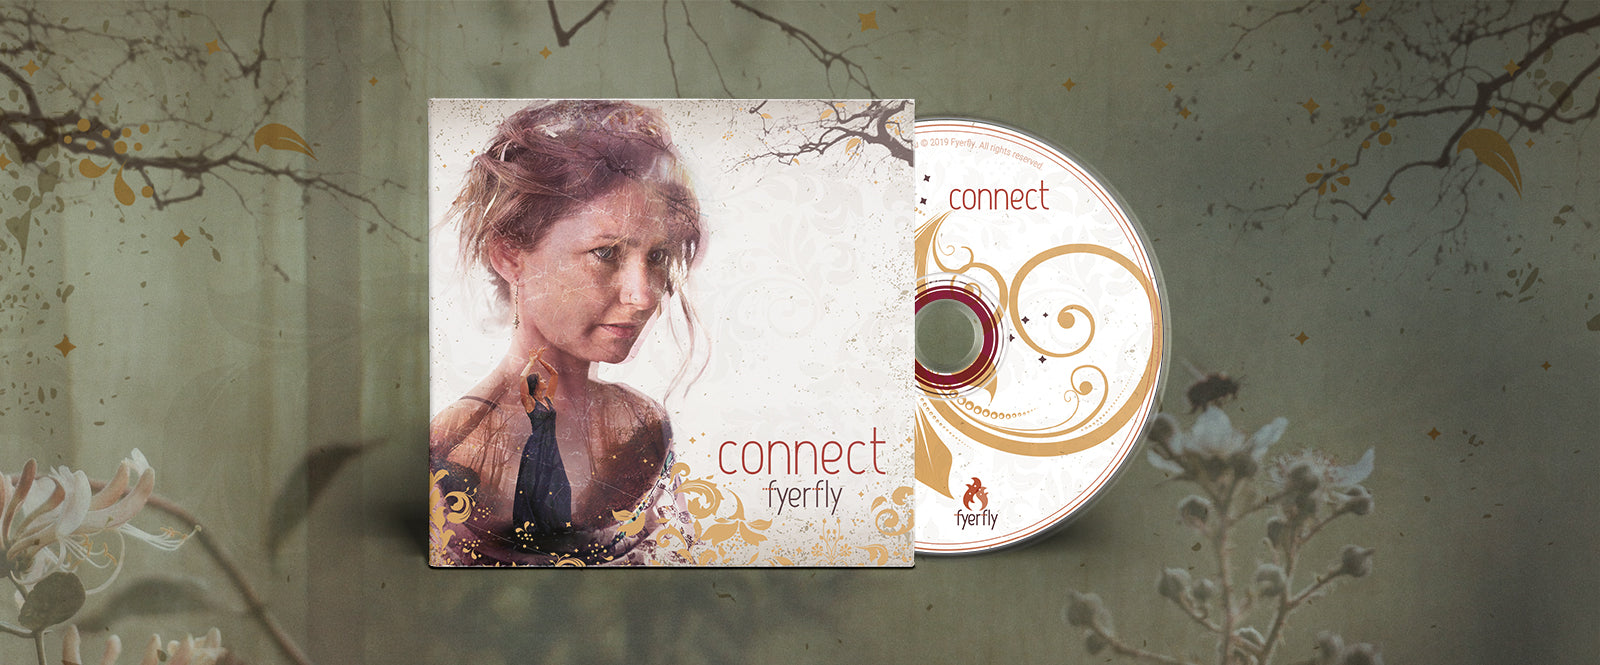 'Connect' is the debut album by sensual sadcore songstress Fyerfly.  Infusing elements of Alt Rock, Sadcore, Jazz and Blues, this deeply intimate and sultry album will soothe you as your soul is immersed in its serene and haunting sounds.